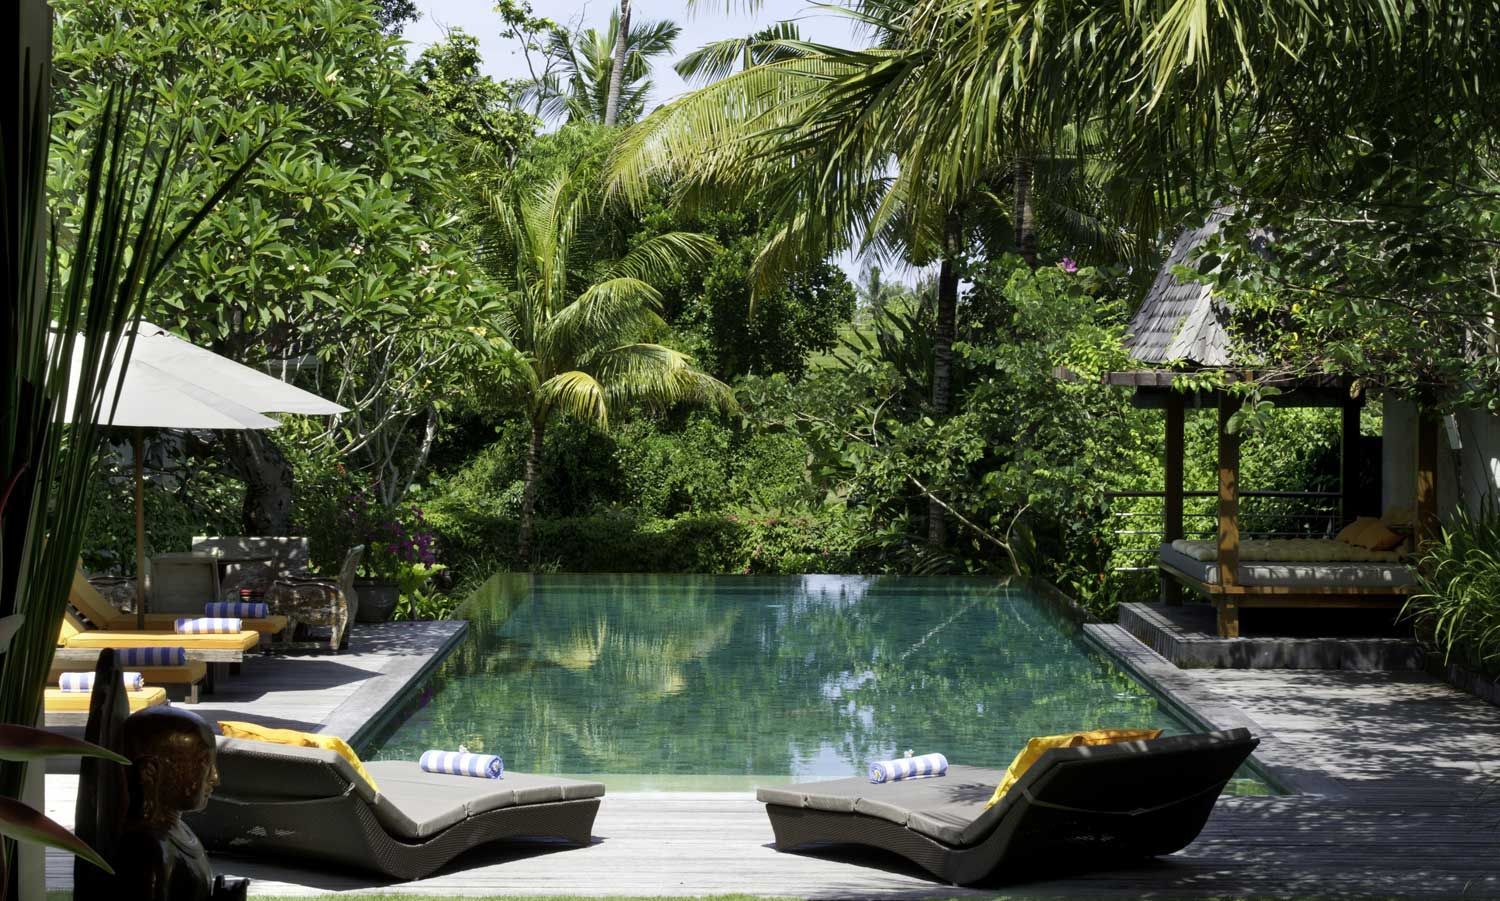 Guest House in Indonesian island of Bali.We`ll surround you with positive energy and genuine Balinese hospitality